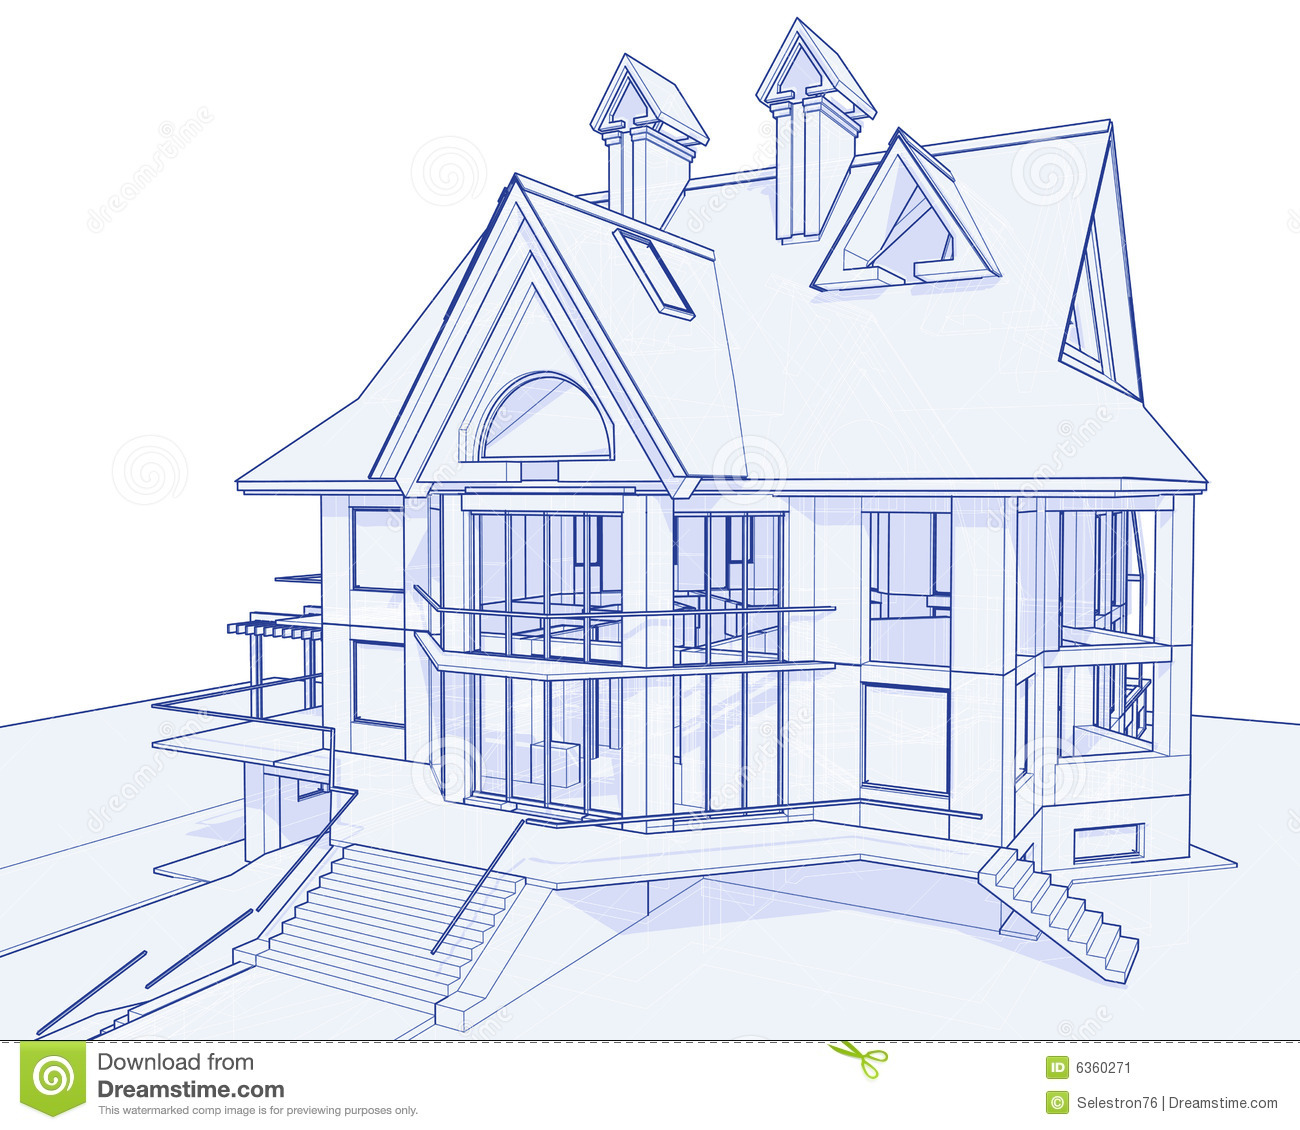 ... Blueprint House Technical Draw Dreamstime.com ...